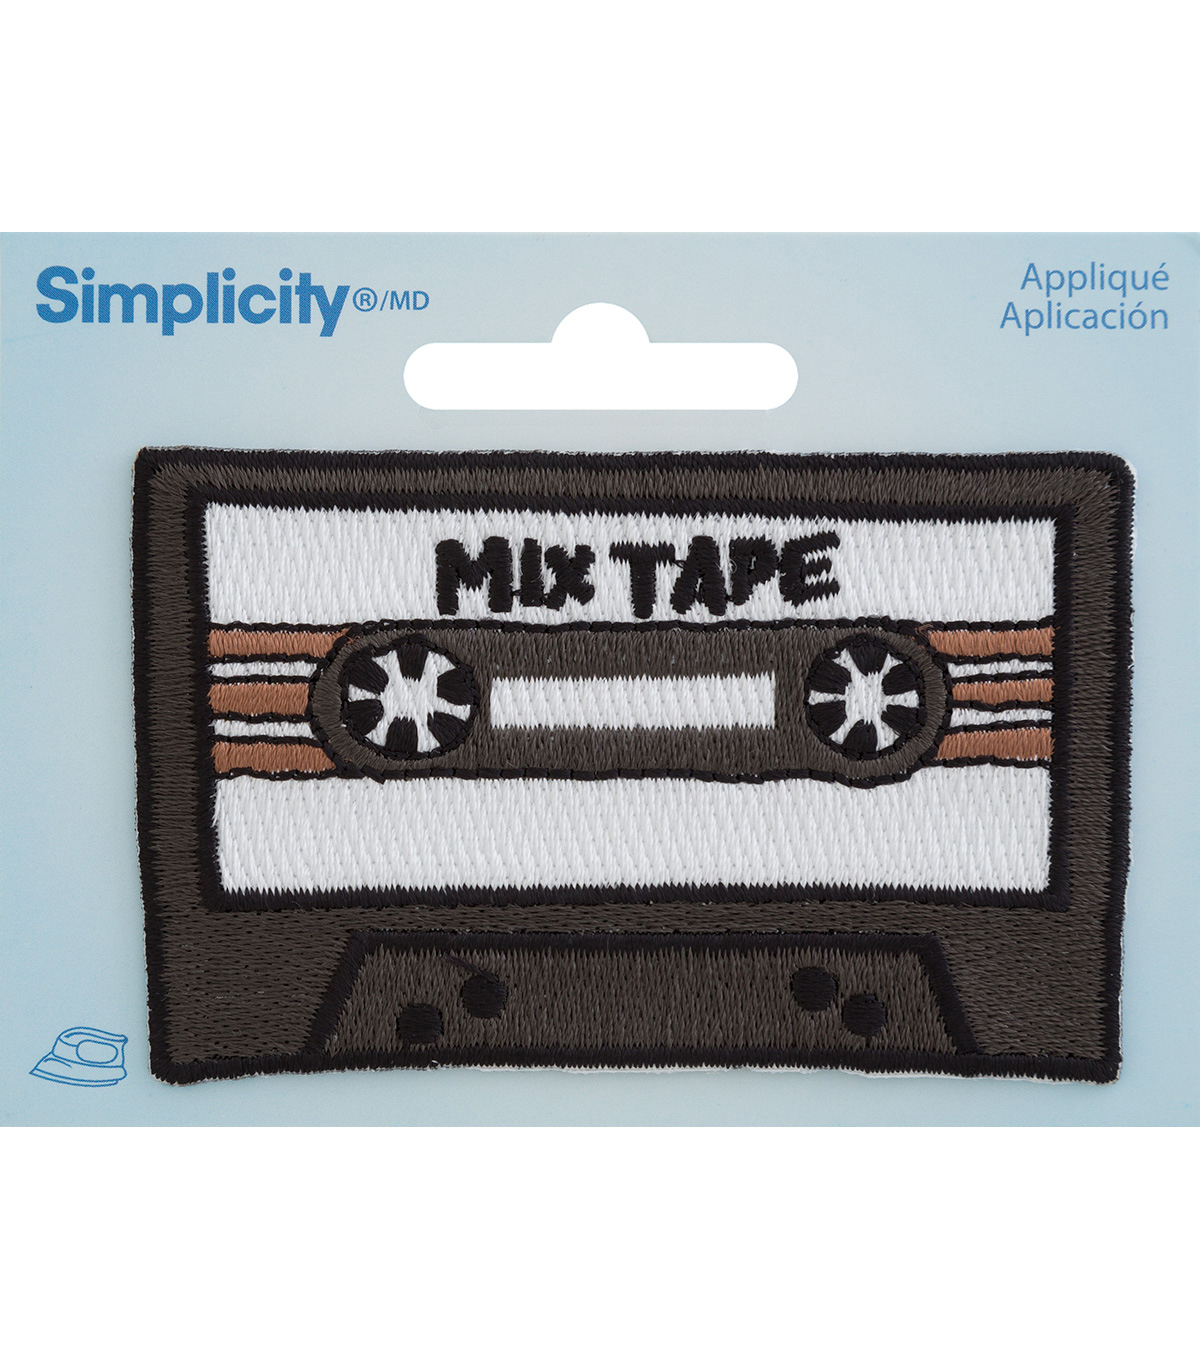 Simplicity Embroidered Iron-On Applique-Cassette Tape